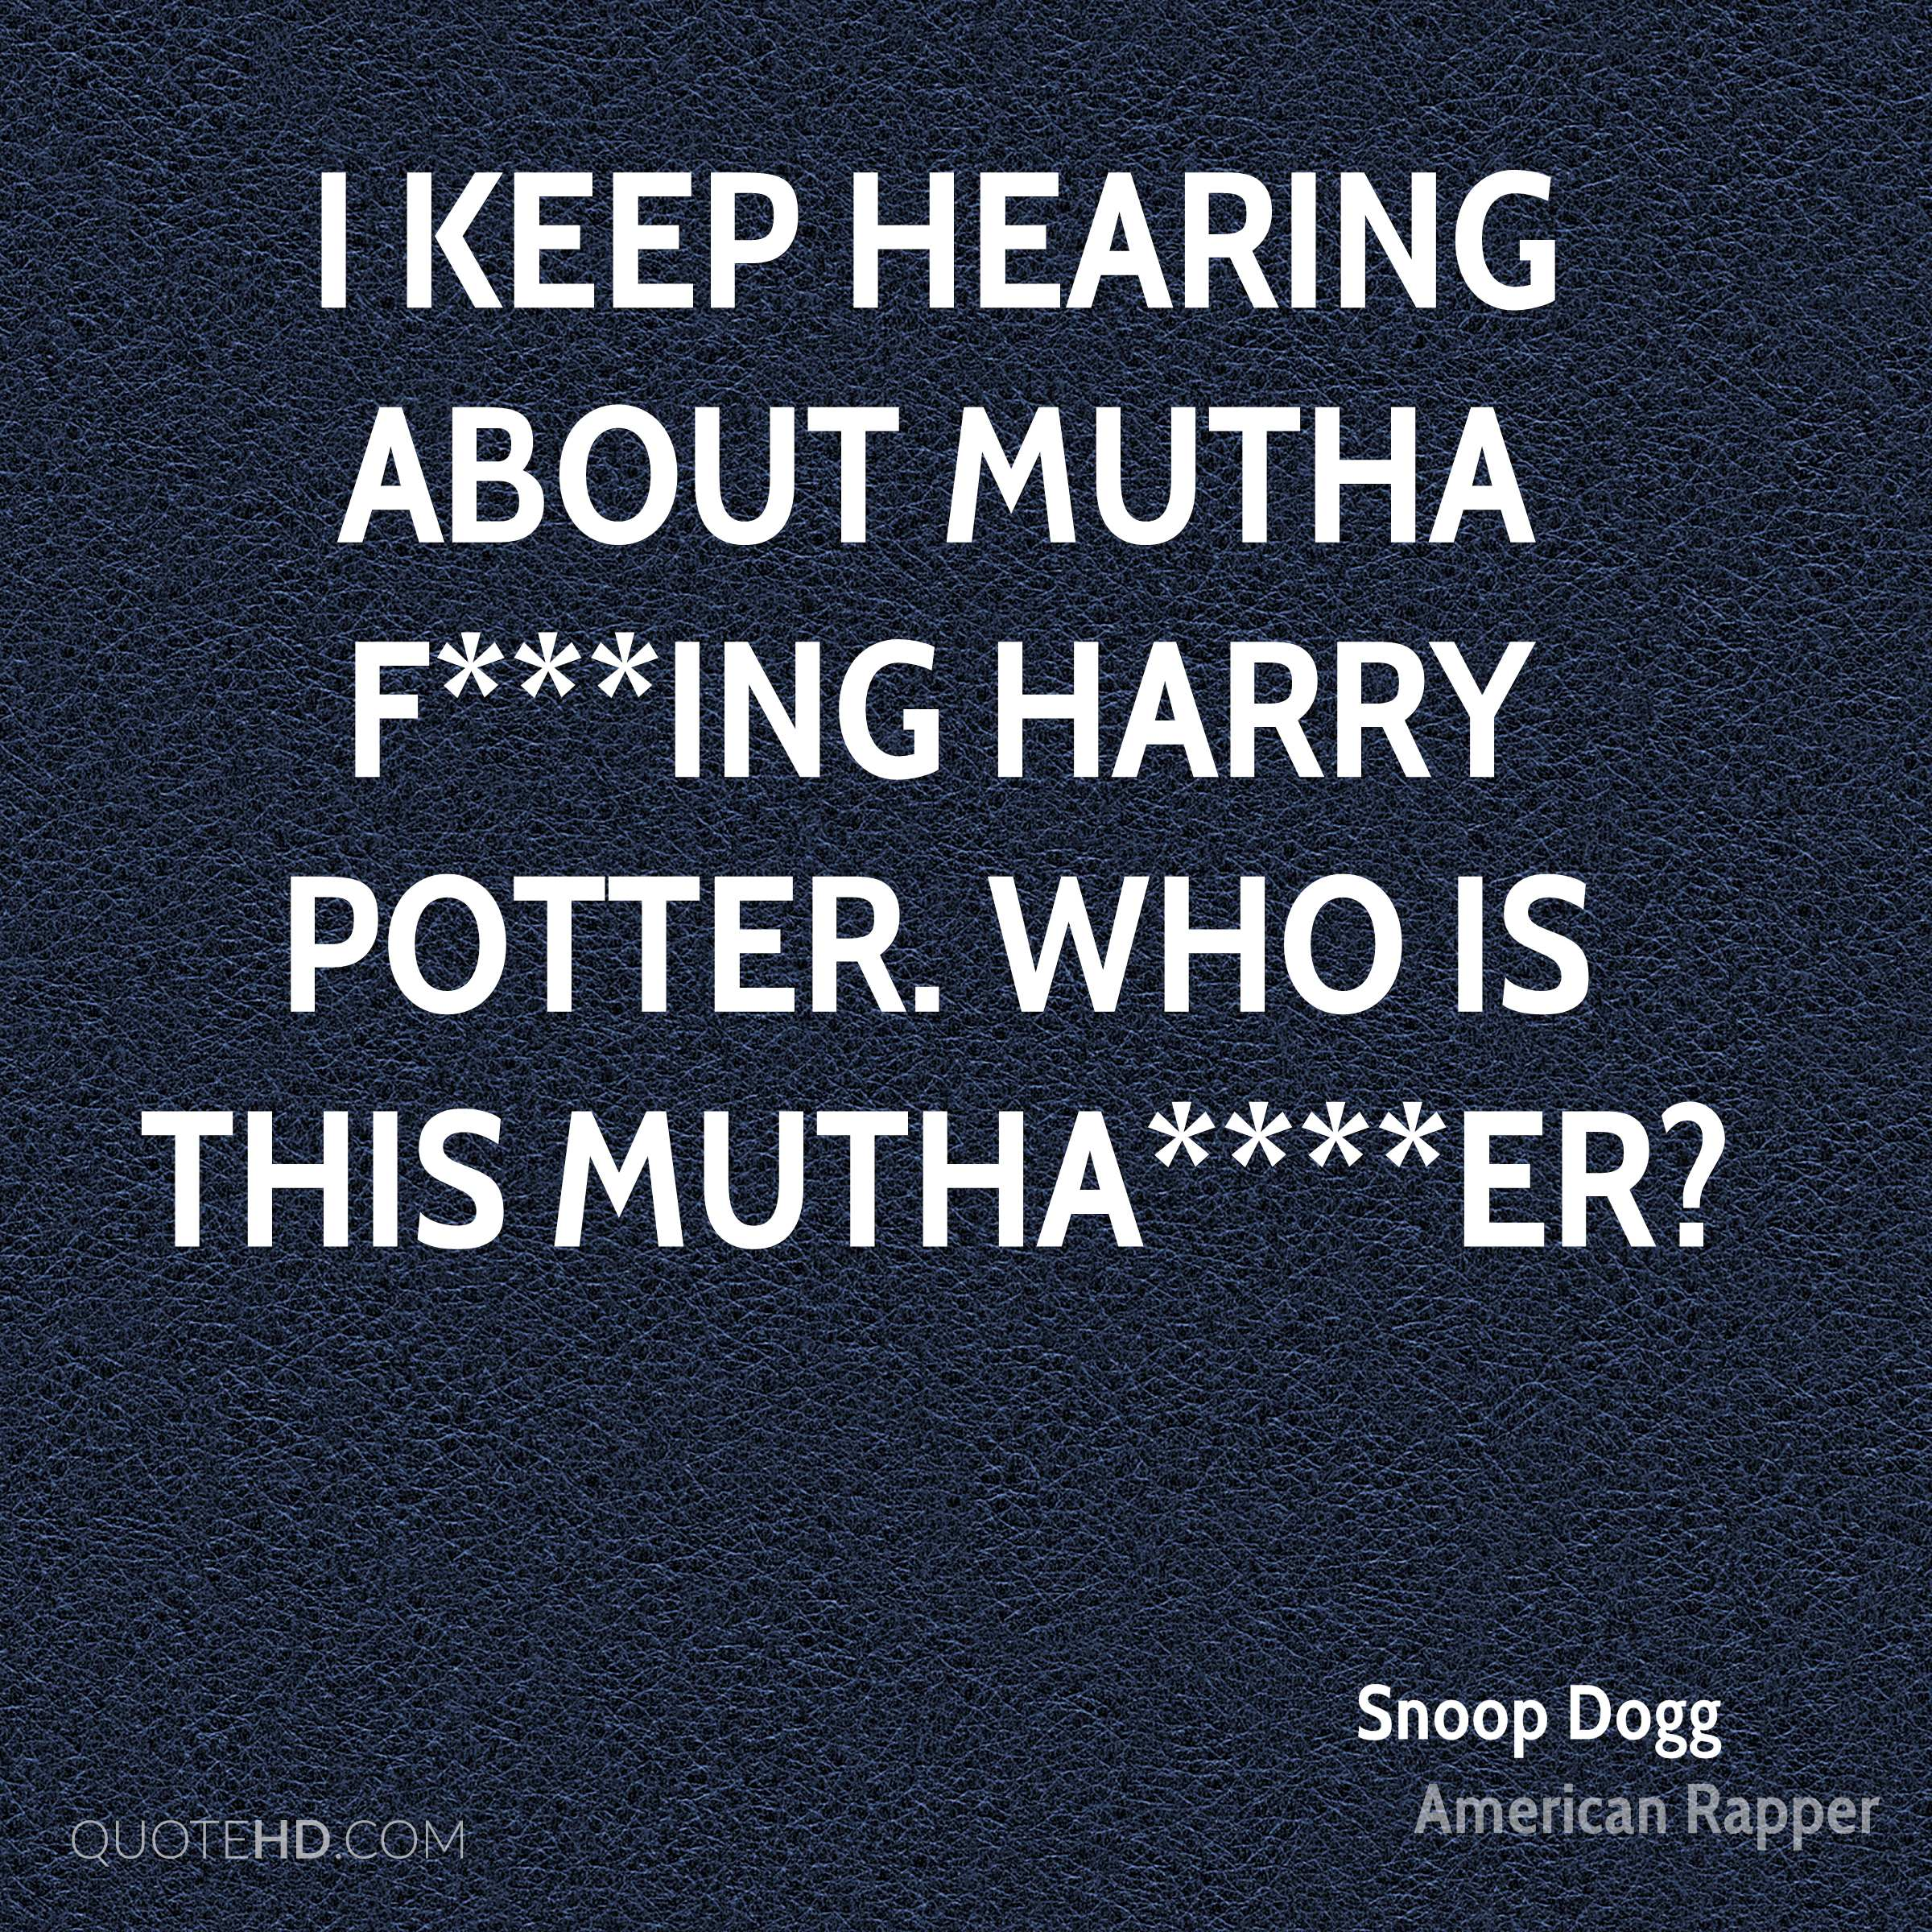 I keep hearing about mutha f***ing Harry Potter. Who is this mutha****er?